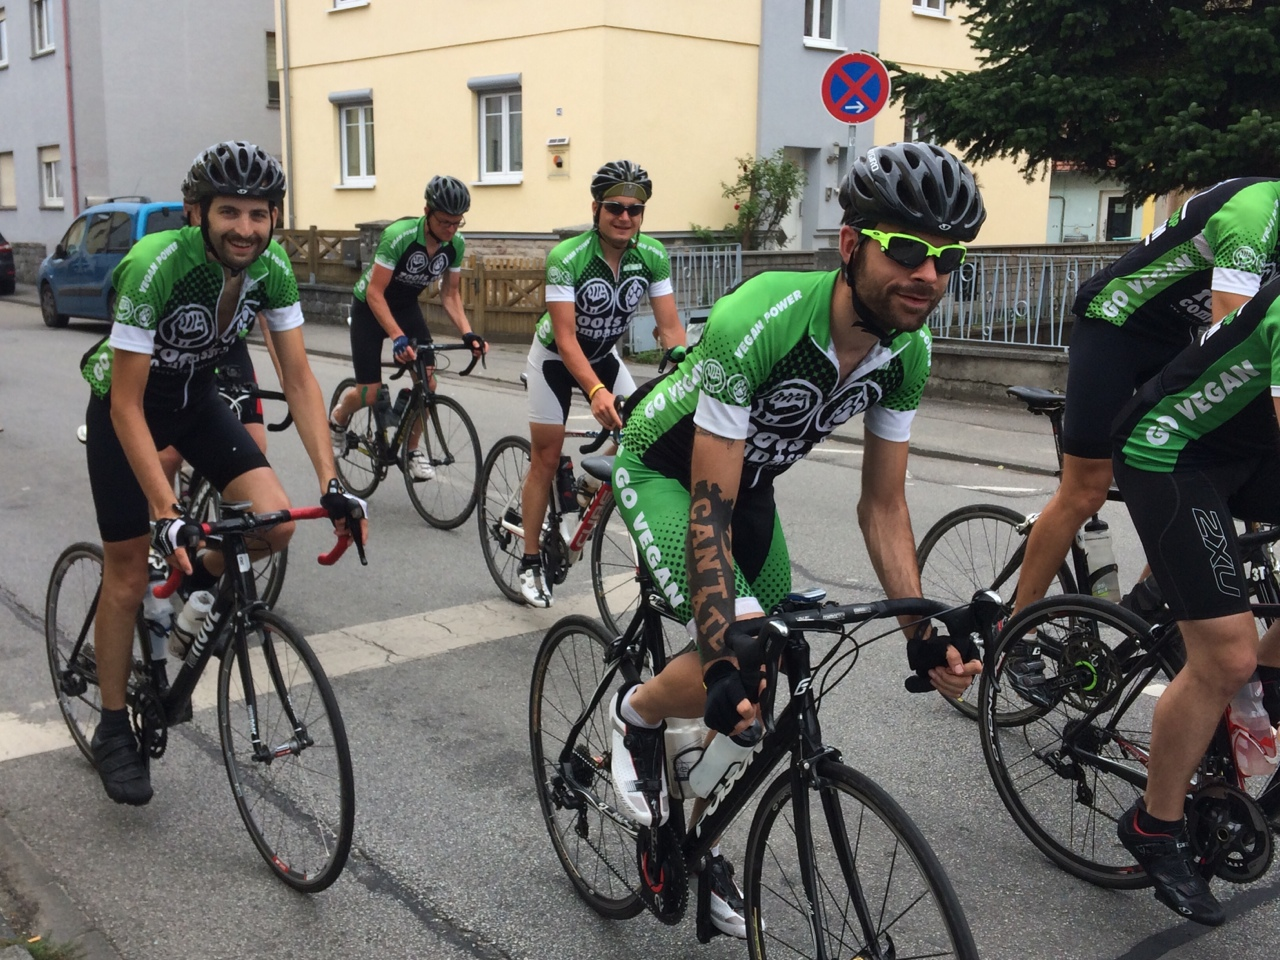 In case you see those guys, applaud them, they are about to finish their tour from Kiel to Konstanz tomorrow. 1000km in five days on a vegan diet. Next time someone asks about protein…   Respect guys!